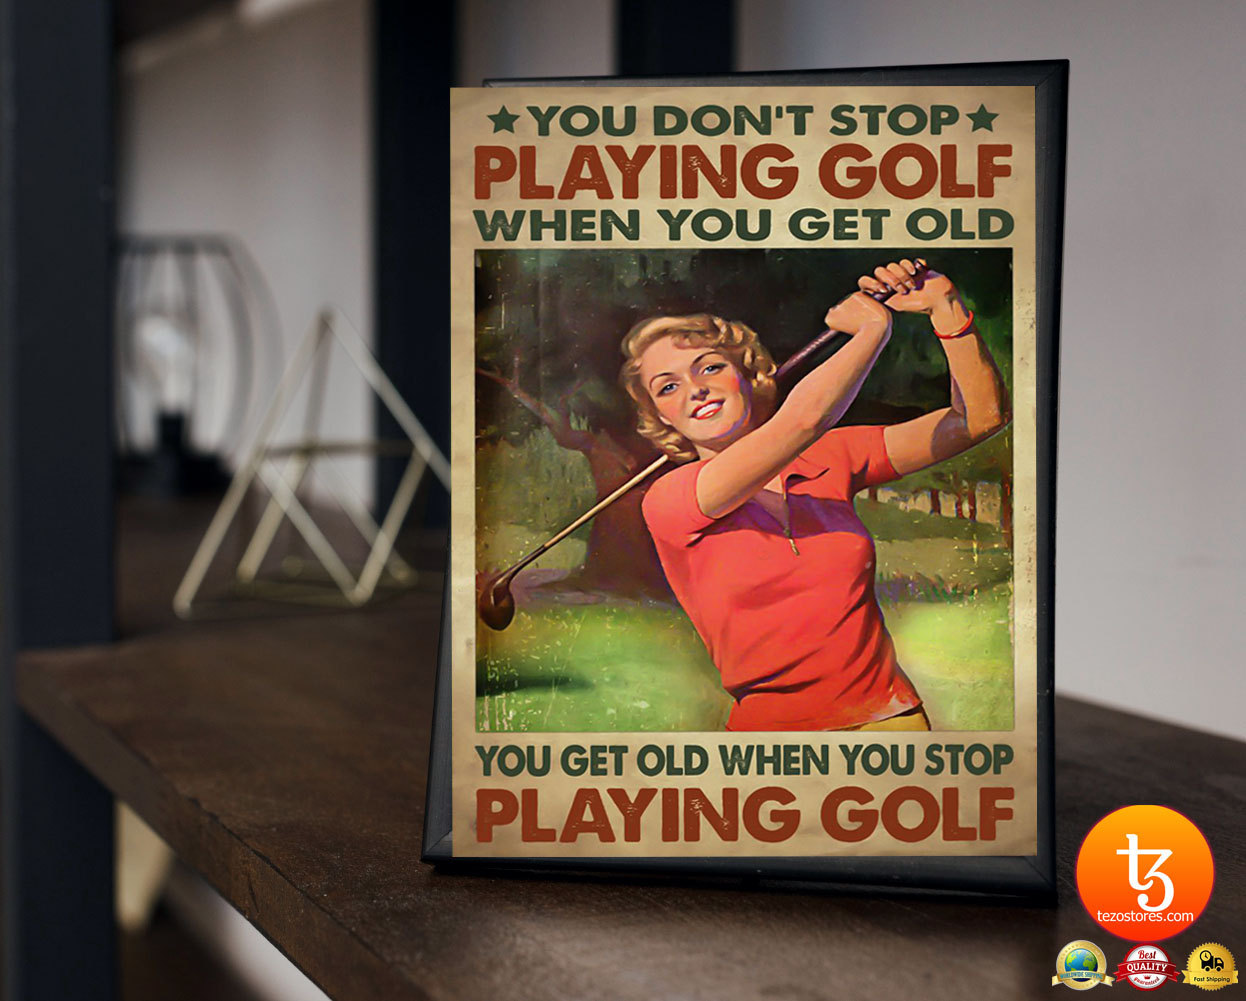 Woman You don't stop playing golf when you get old poster 19